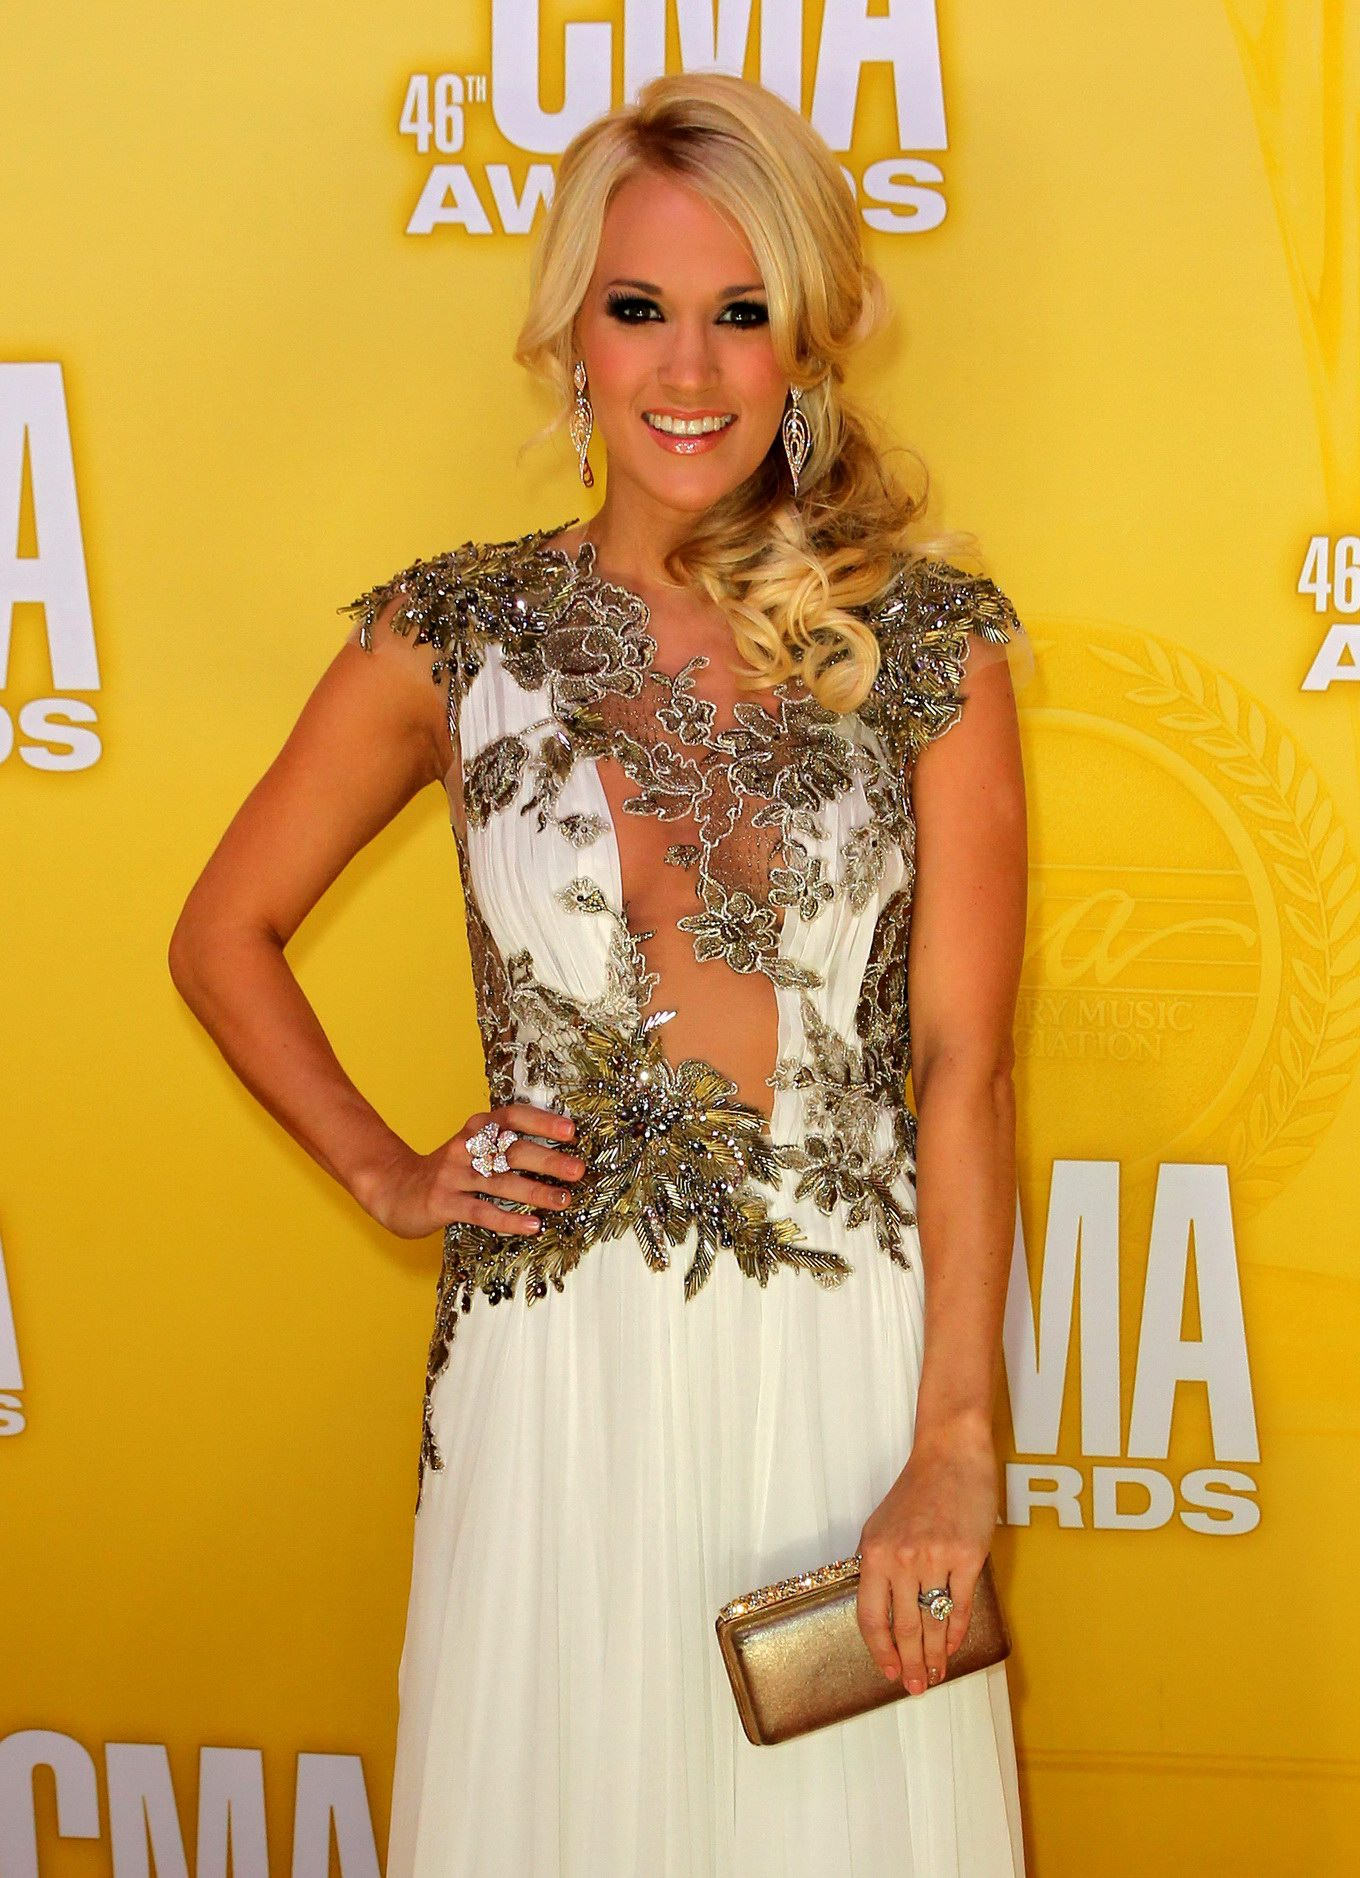 Carrie Underwood Braless Wearing A Partially See Through